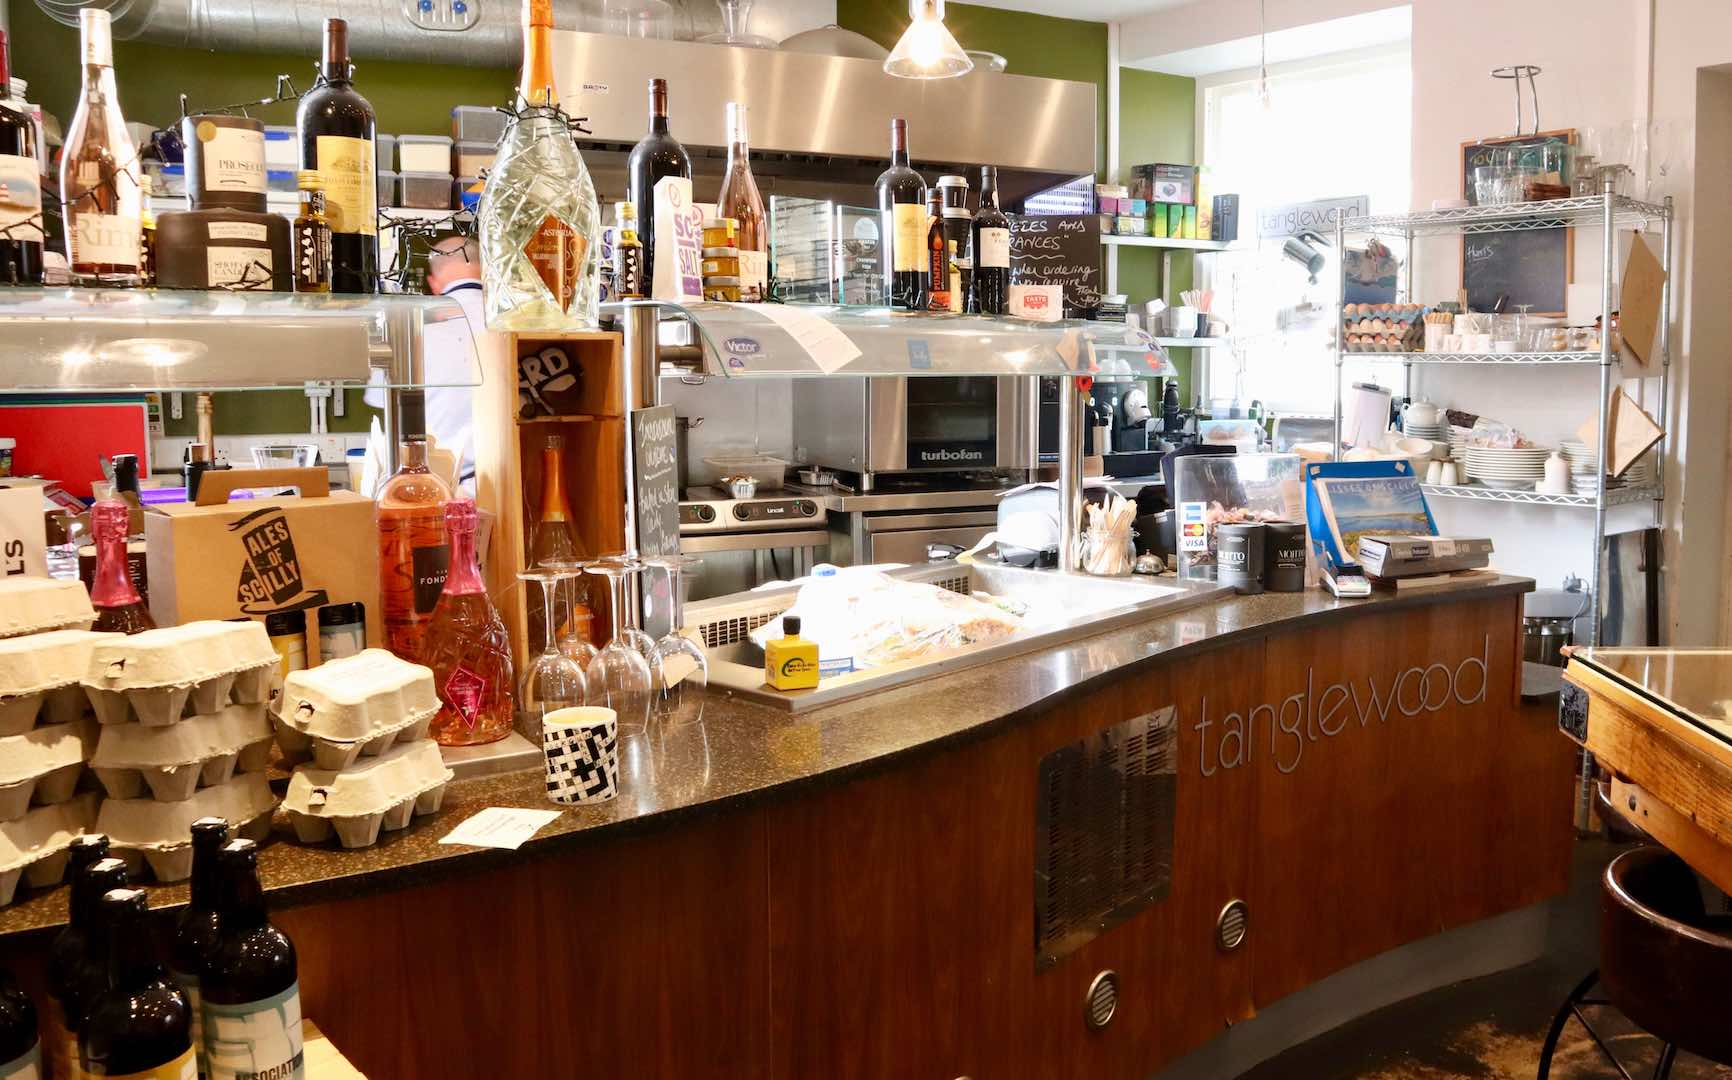 The Tanglewood Kitchen